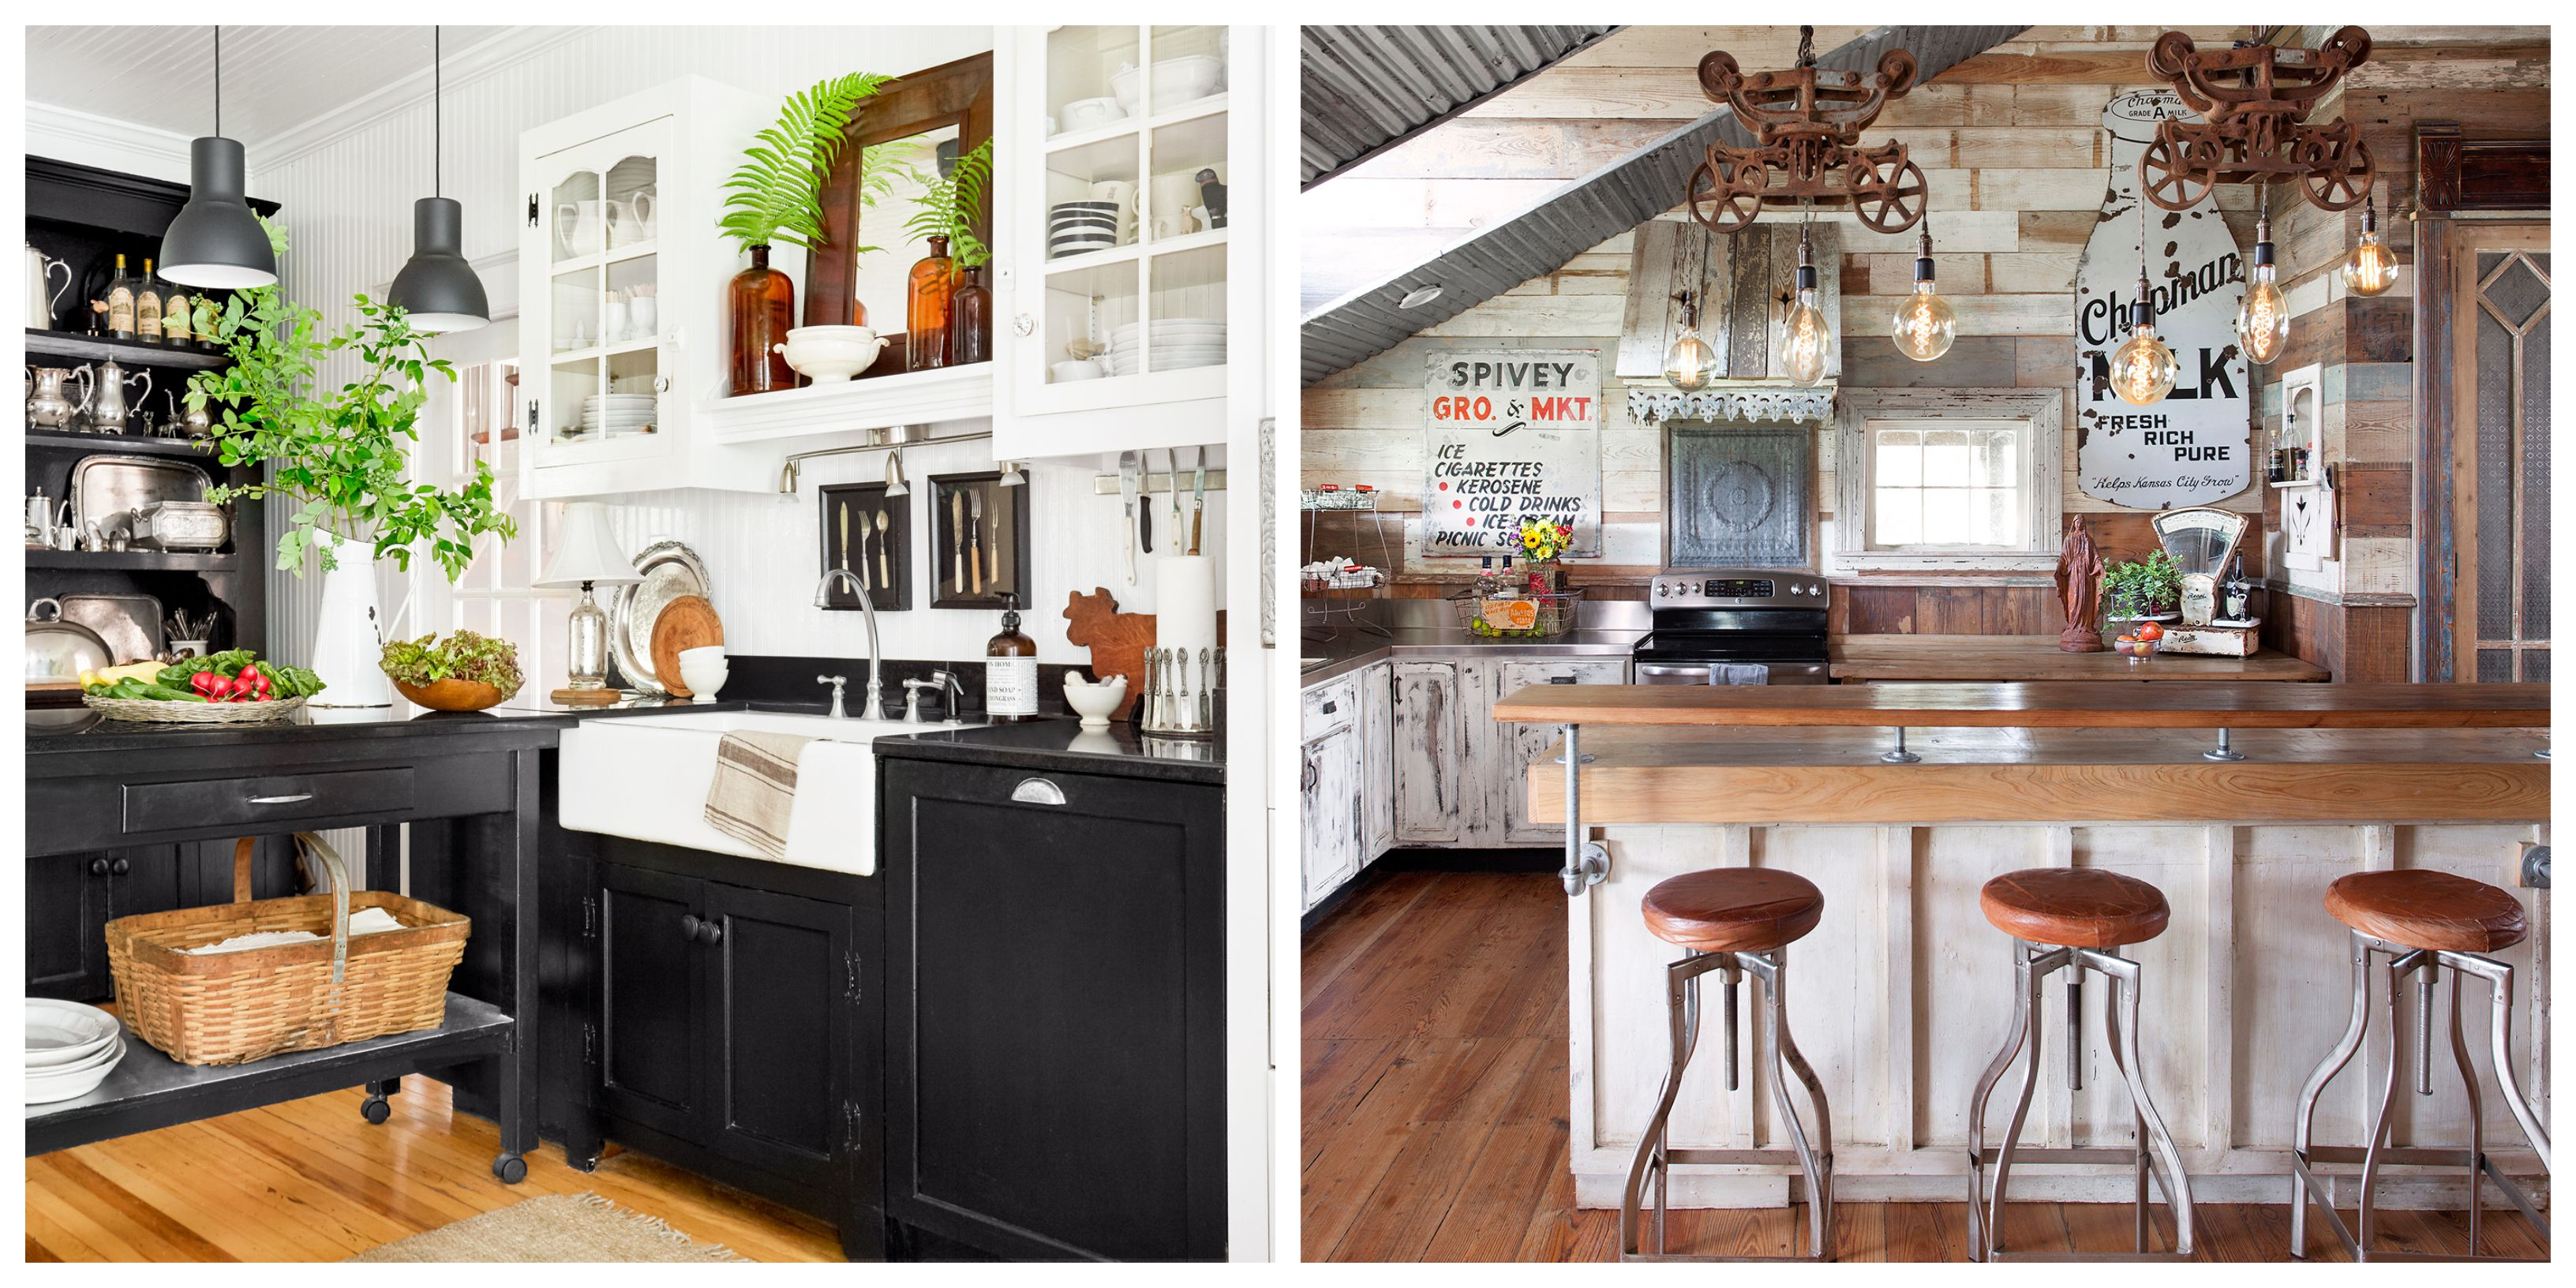 Widely Used 34 Farmhouse Style Kitchens – Rustic Decor Ideas For Kitchens With Farm Metal Wall Rack And 3 Tin Pot With Hanger Wall Decor (View 20 of 20)